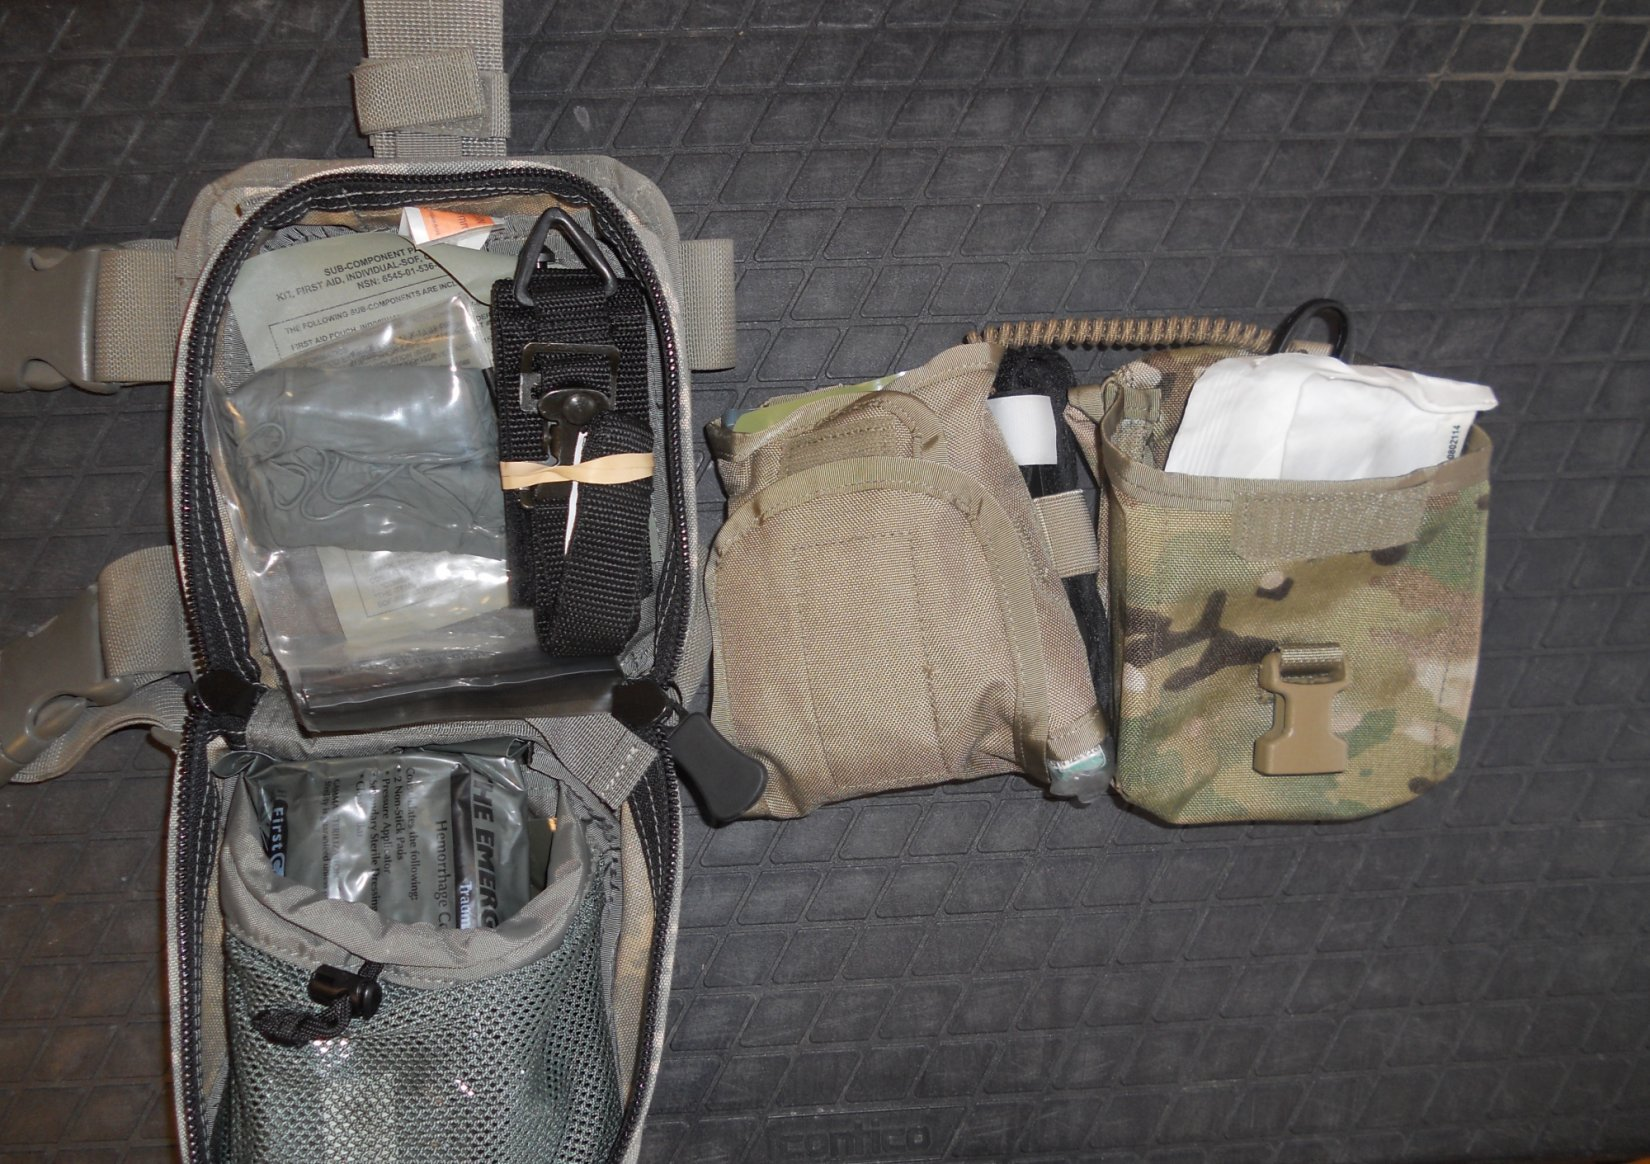 IFAK Individual First Aid Kit Tactical Medicine Combat Medicine Jeff Gurwitch Pic C Individual First Aid Kit (IFAK): Tactical Medicine/Combat Medicine Kit for Military Infantry, Special Operations Forces (SOF) and Civilian Tactical Shooters!